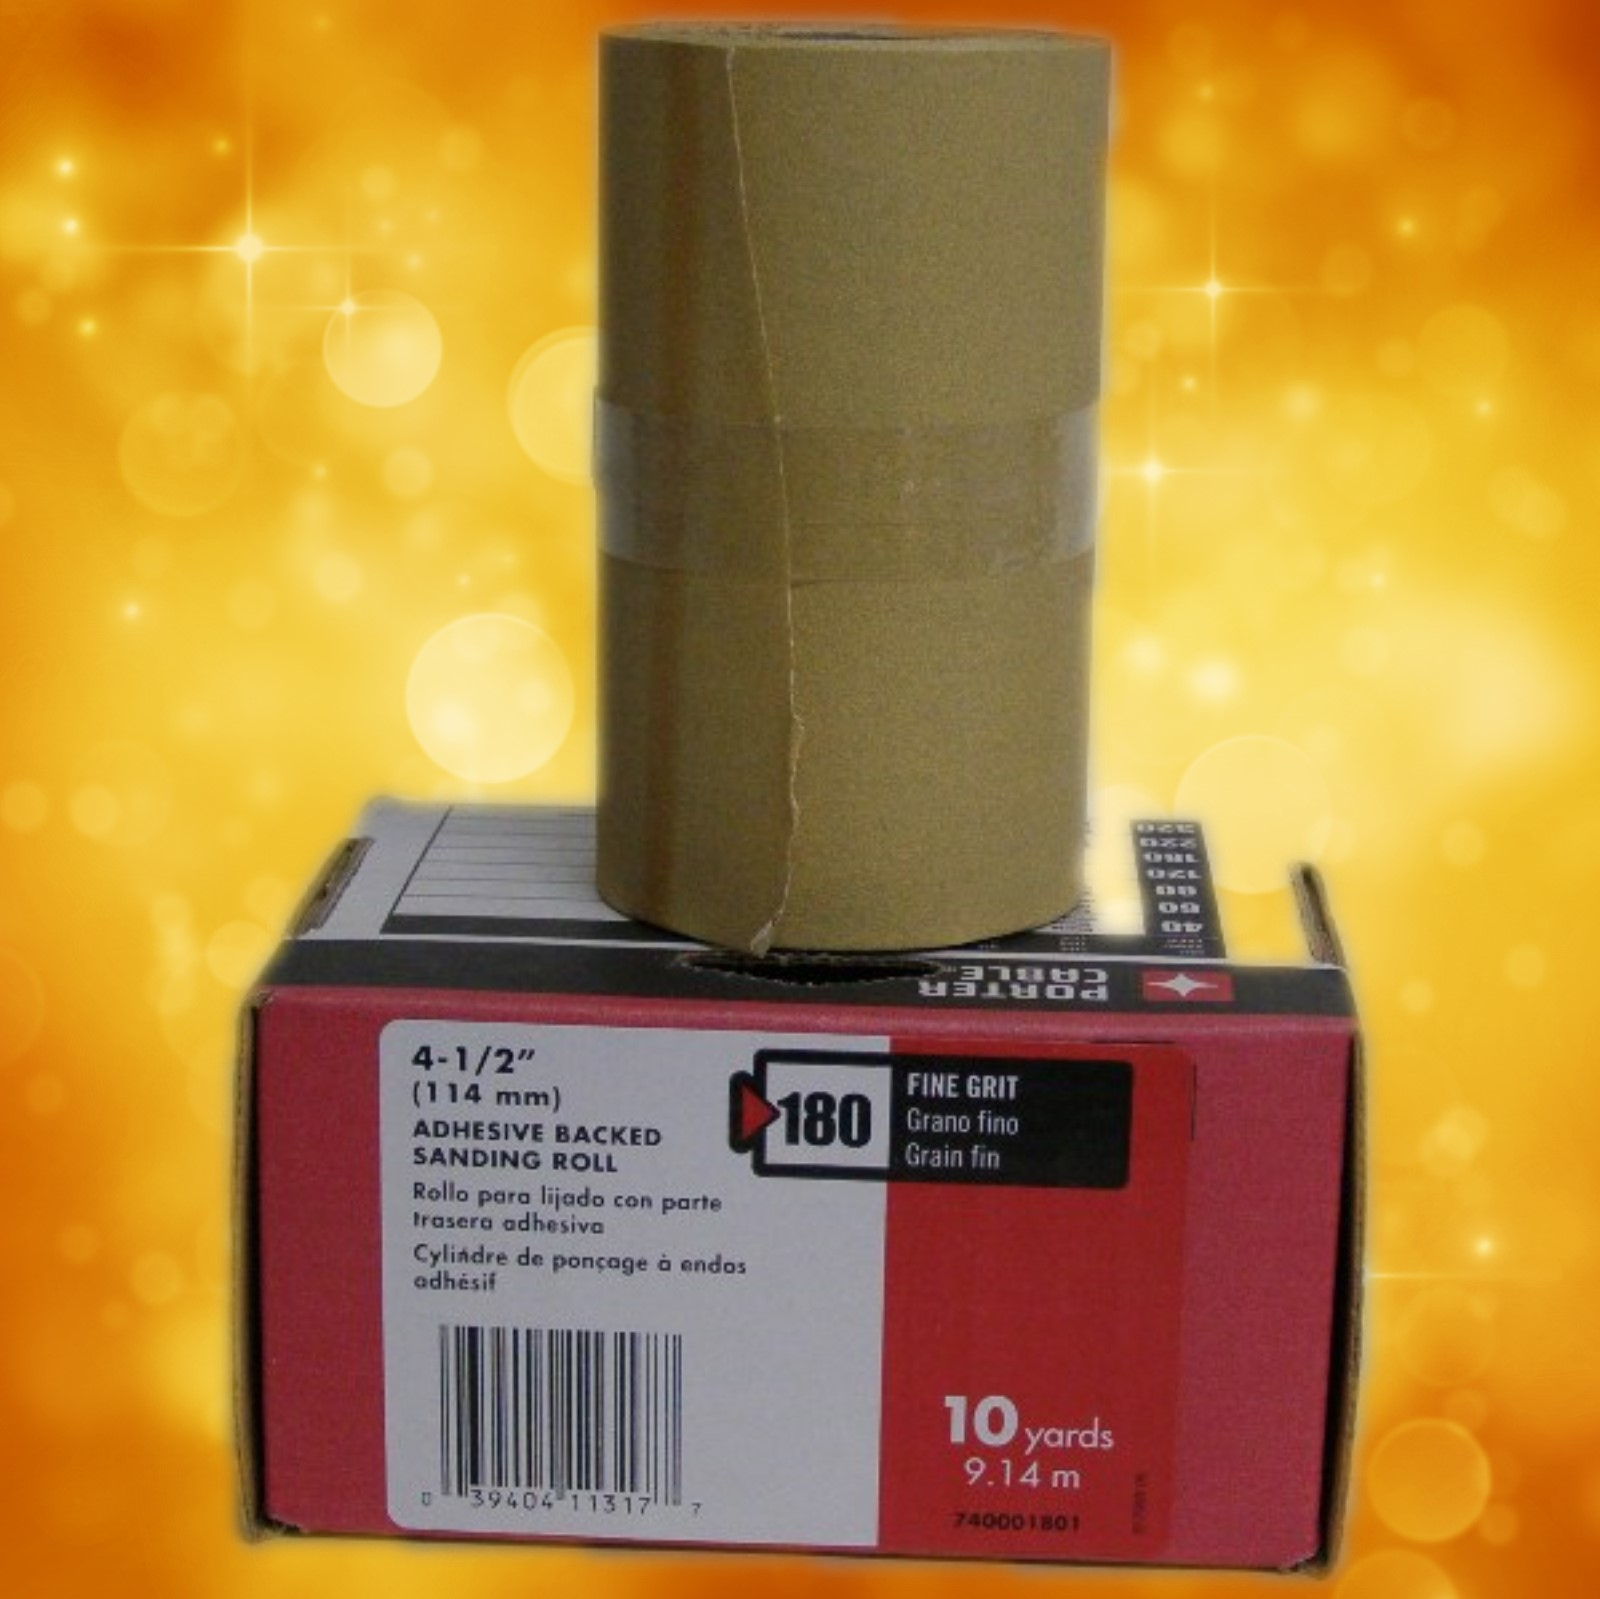 "Porter-Cable 4-1/2"" x 10 Yard, Adhesive-Backed Sanding Roll - 180 Grit 740001801"